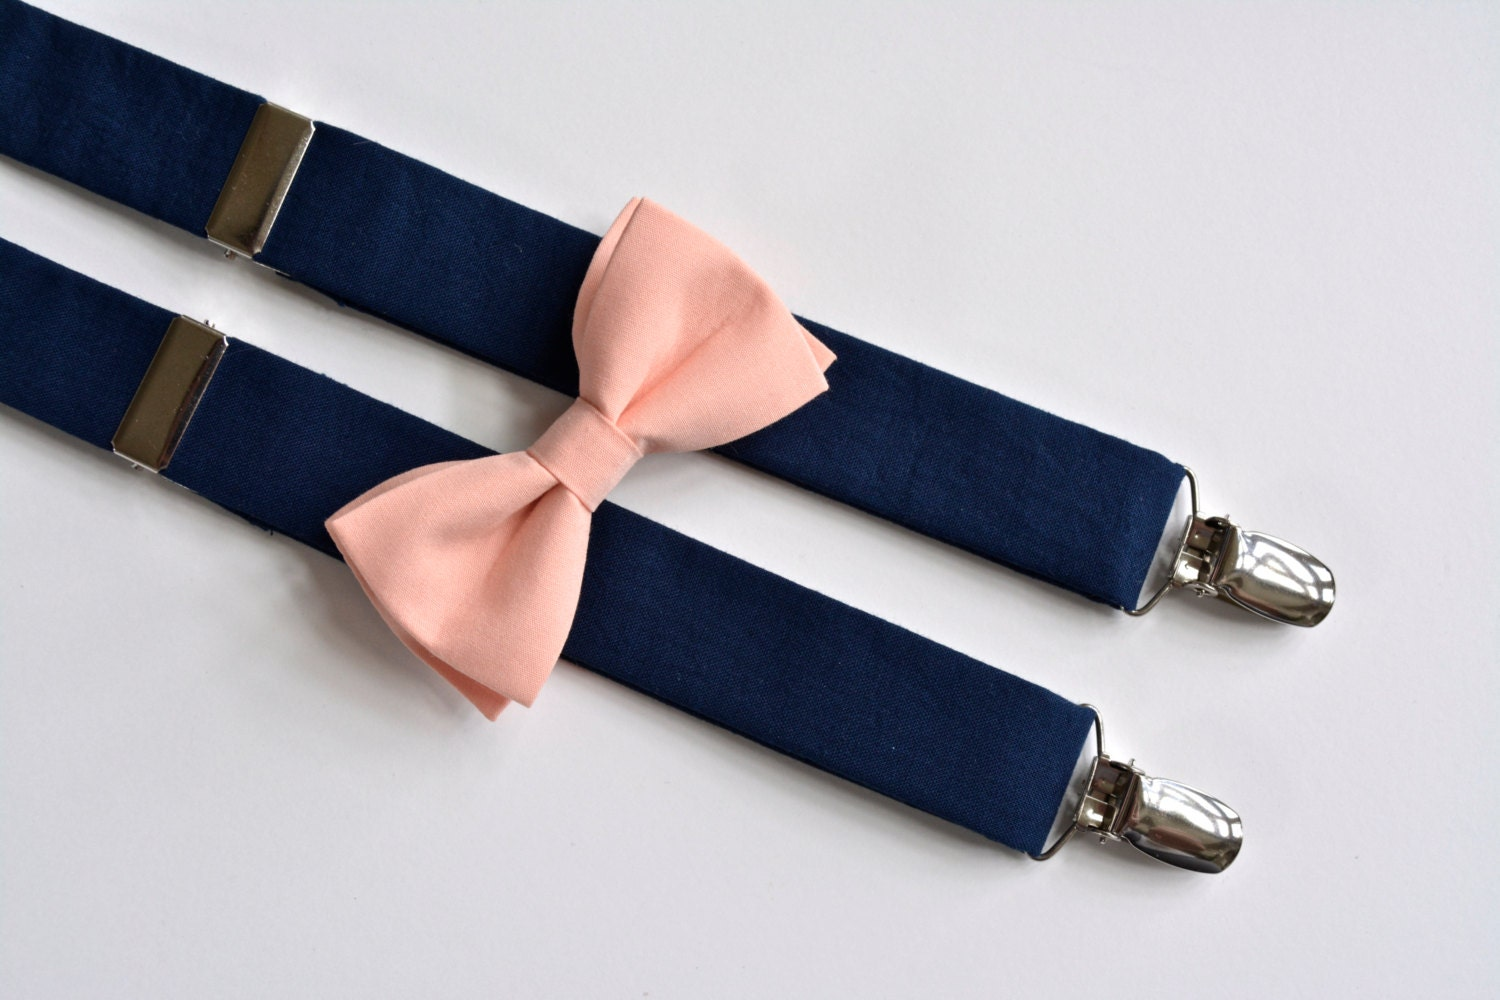 Shop the largest selection of men's suspenders for your formal occasions. Match suspenders with our bow ties & ties. The best deals on loop or clip style suspenders, boys suspenders also available. Blue Tie Bars. Purple Tie Bars. Green Tie Bars. Red Tie Bars. Pink Tie Bars. Yellow Tie Bars. White Tie .